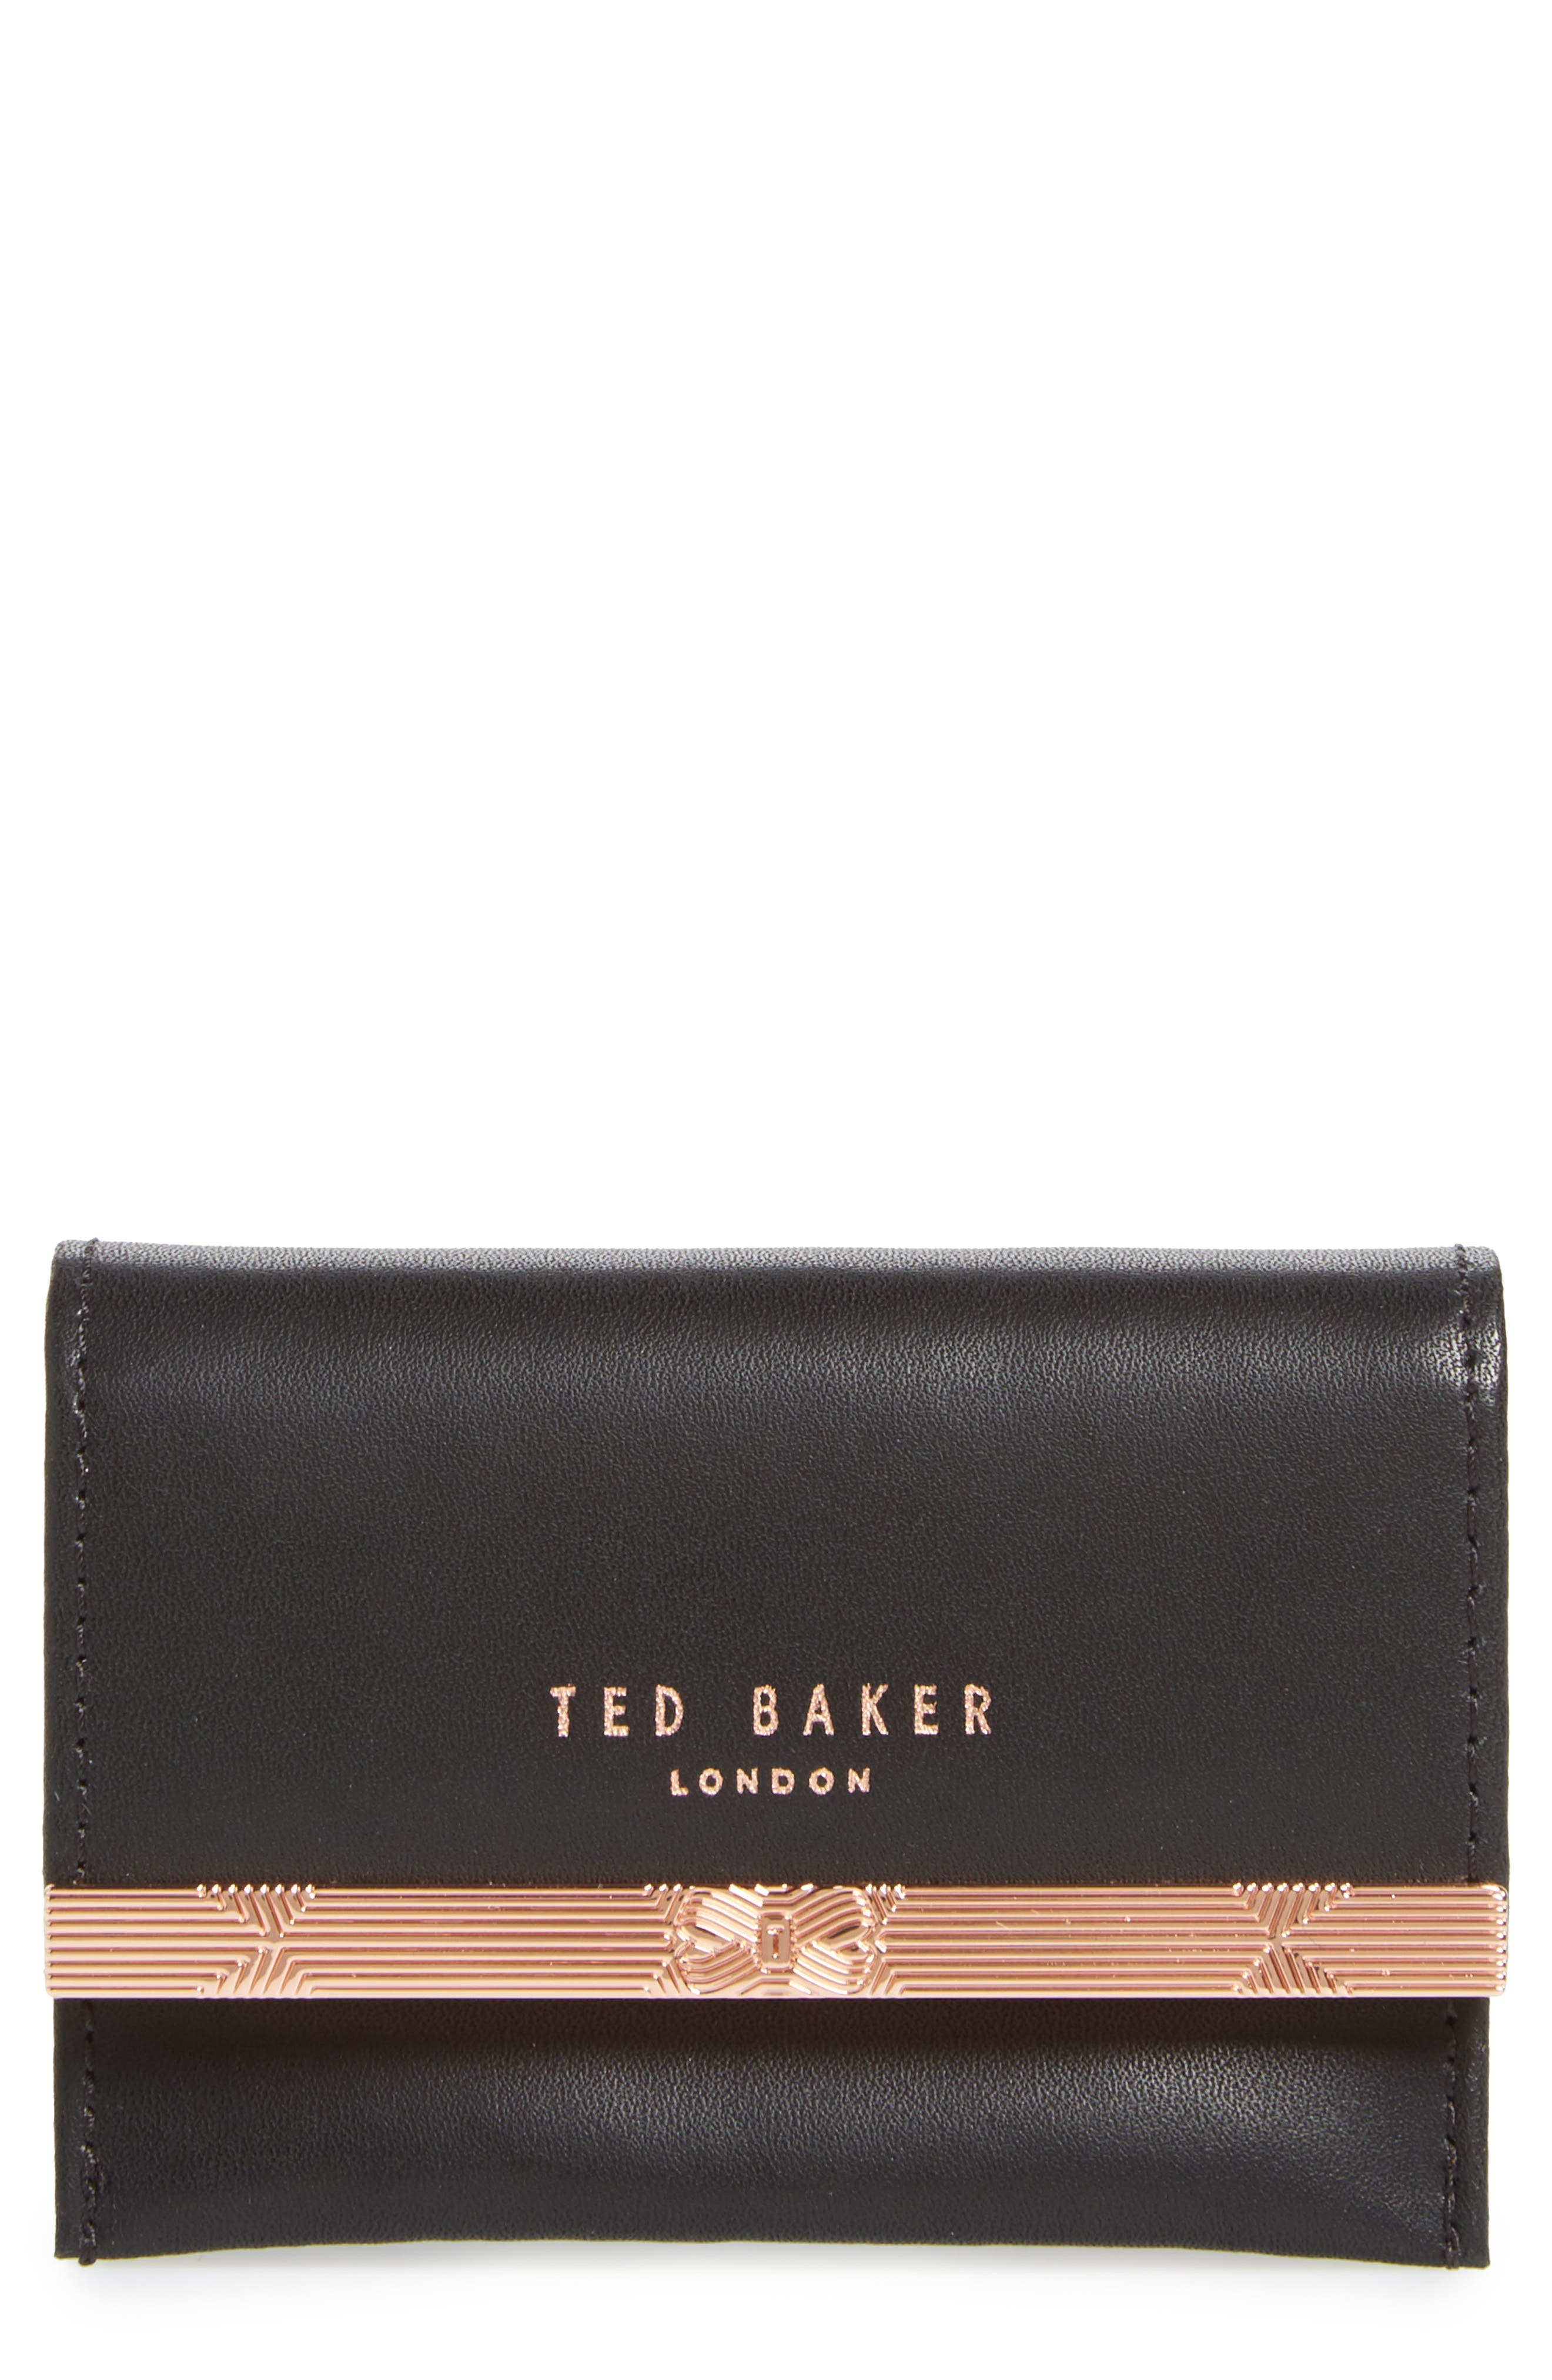 Ted Baker London Niccole Accordion Leather Card Case